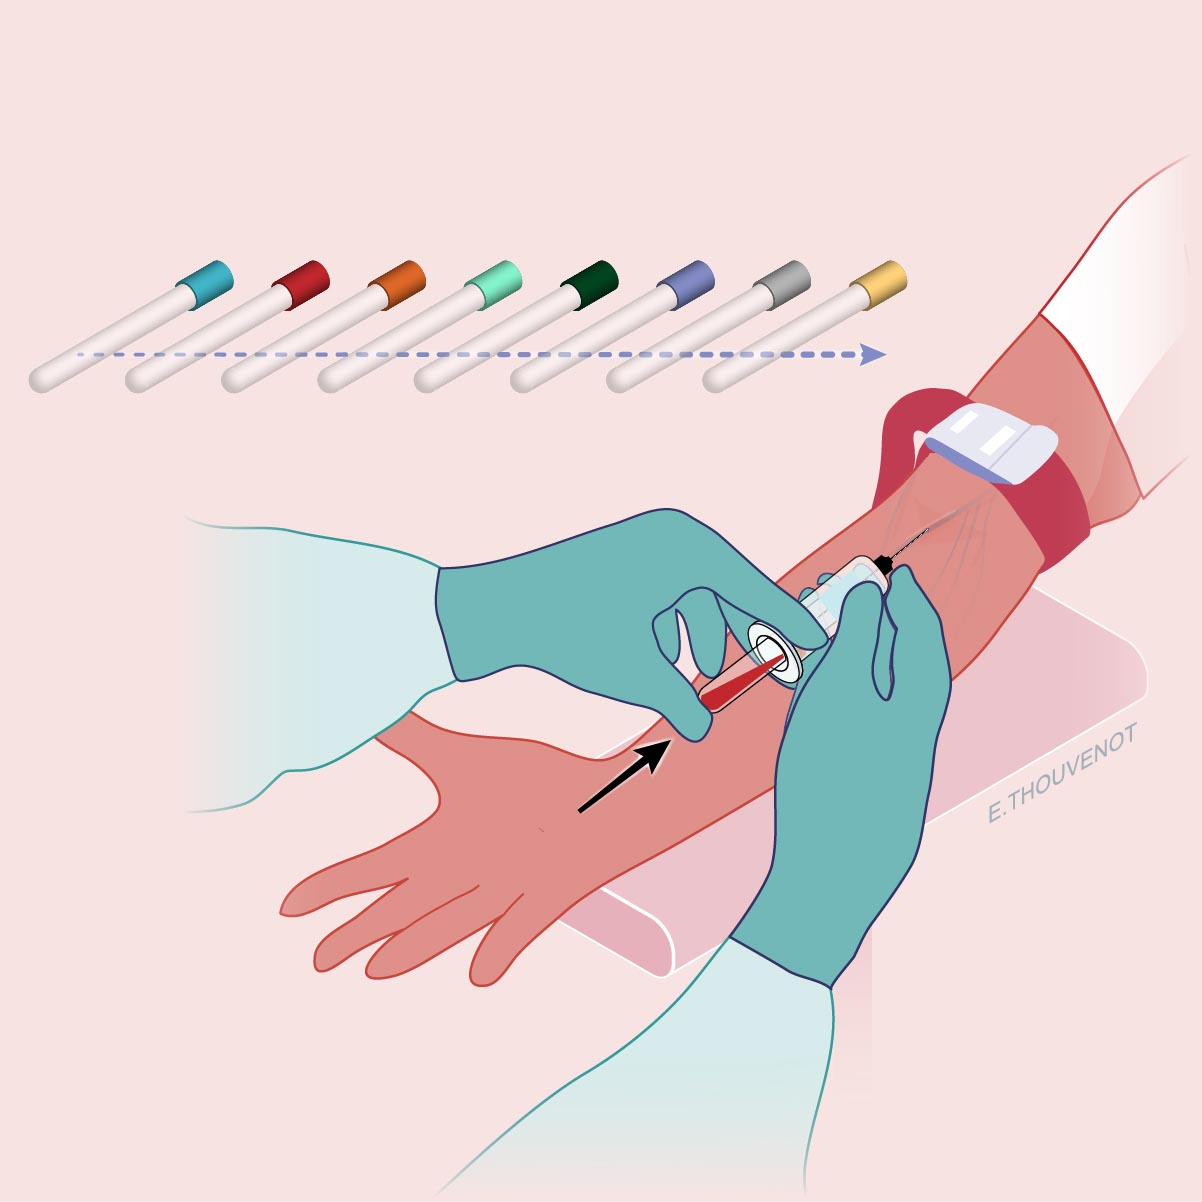 Performing   Venepuncture   A series of e-learning guides designed to teach basic skill to health professional in under-resourced communities worldwide.